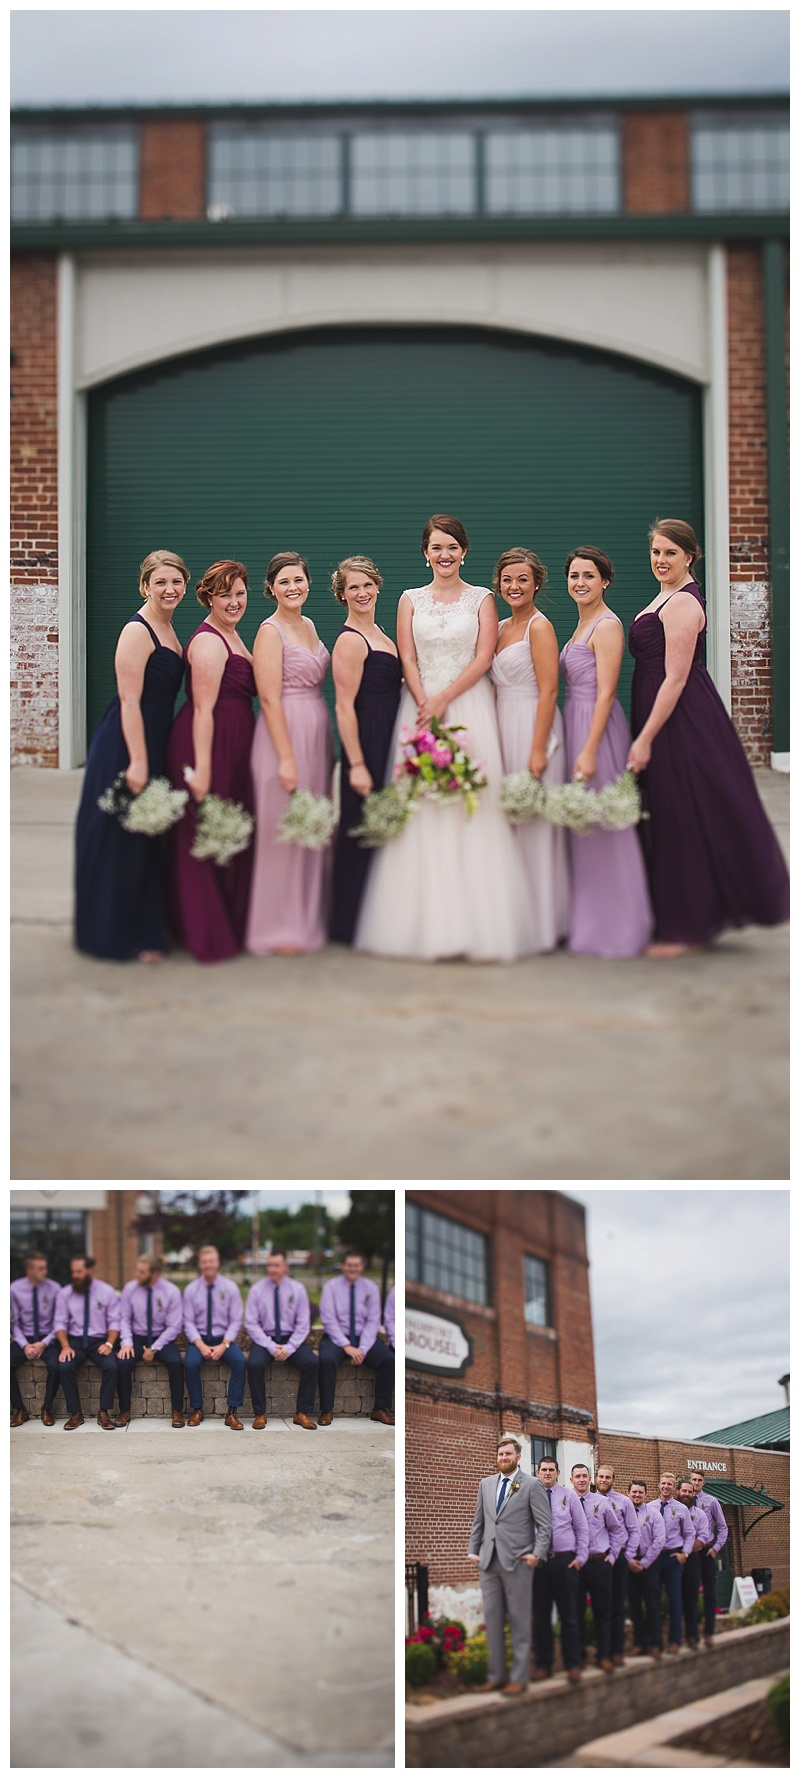 EmilyRogers-kingsport-tennesse-wedding-photographer_0024.jpg